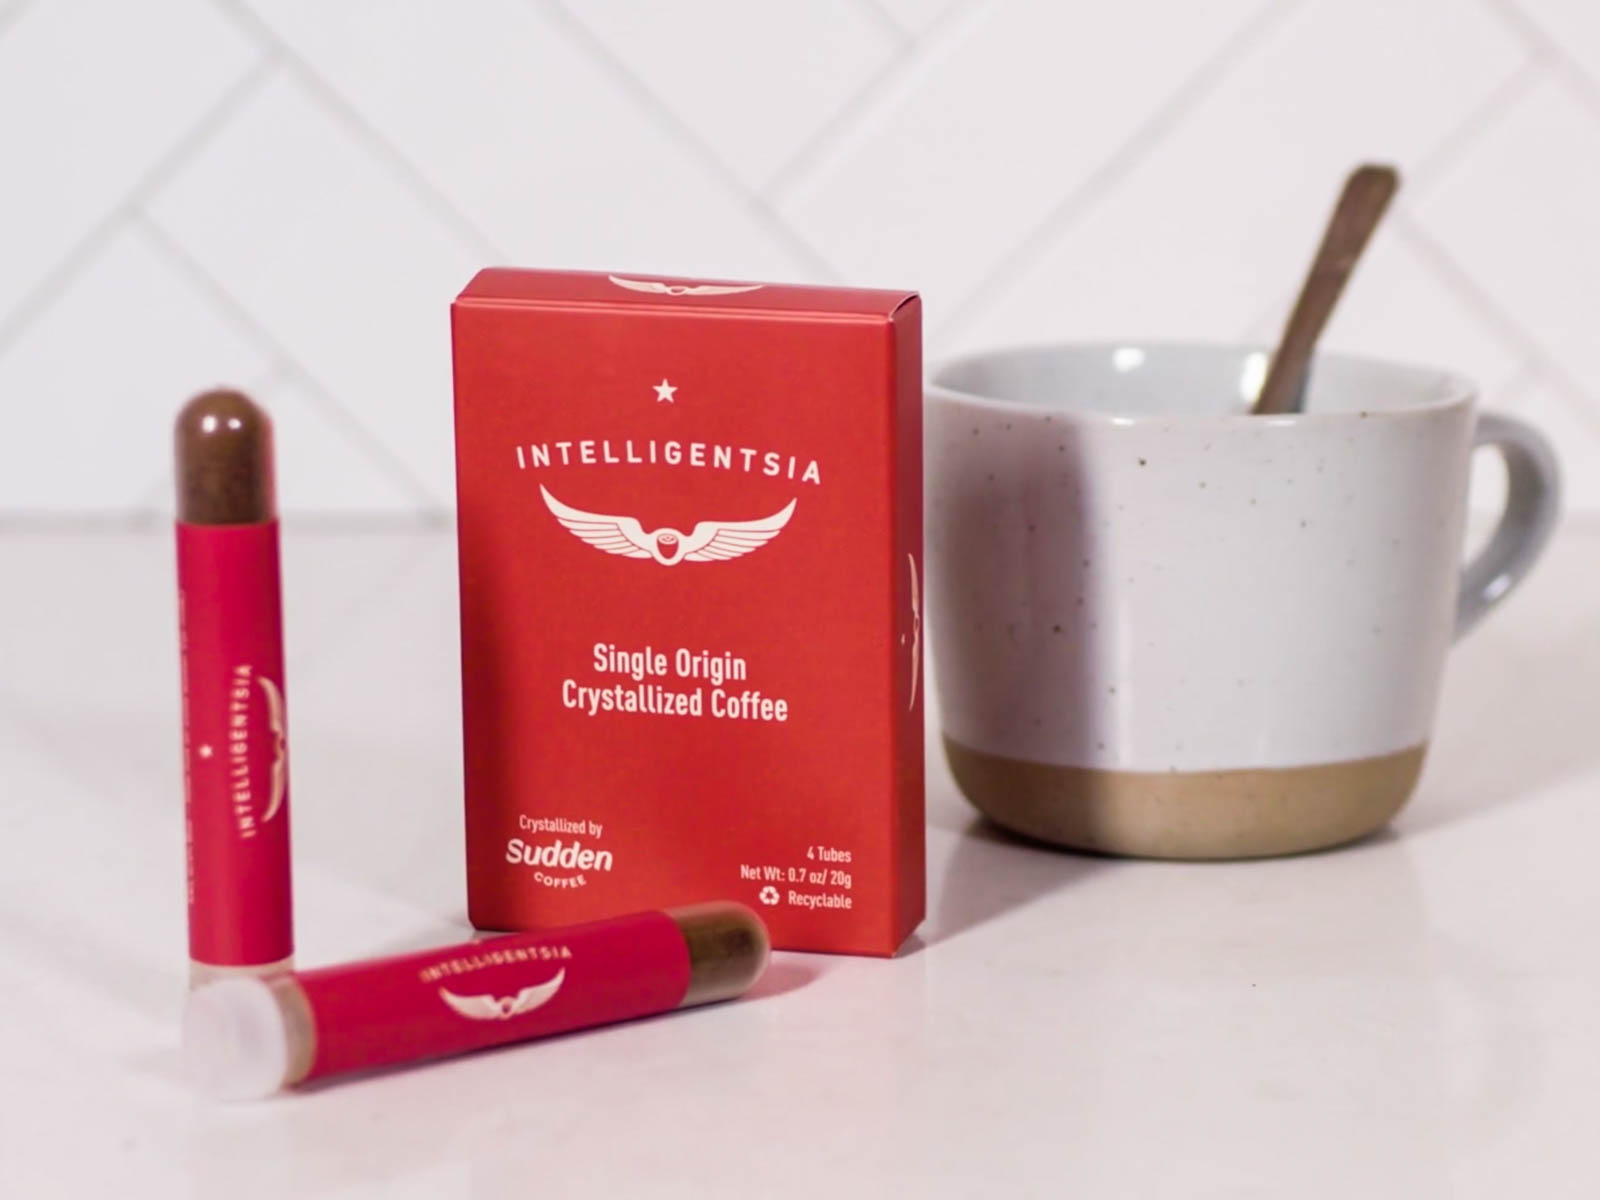 Intelligentsia Instant Coffee